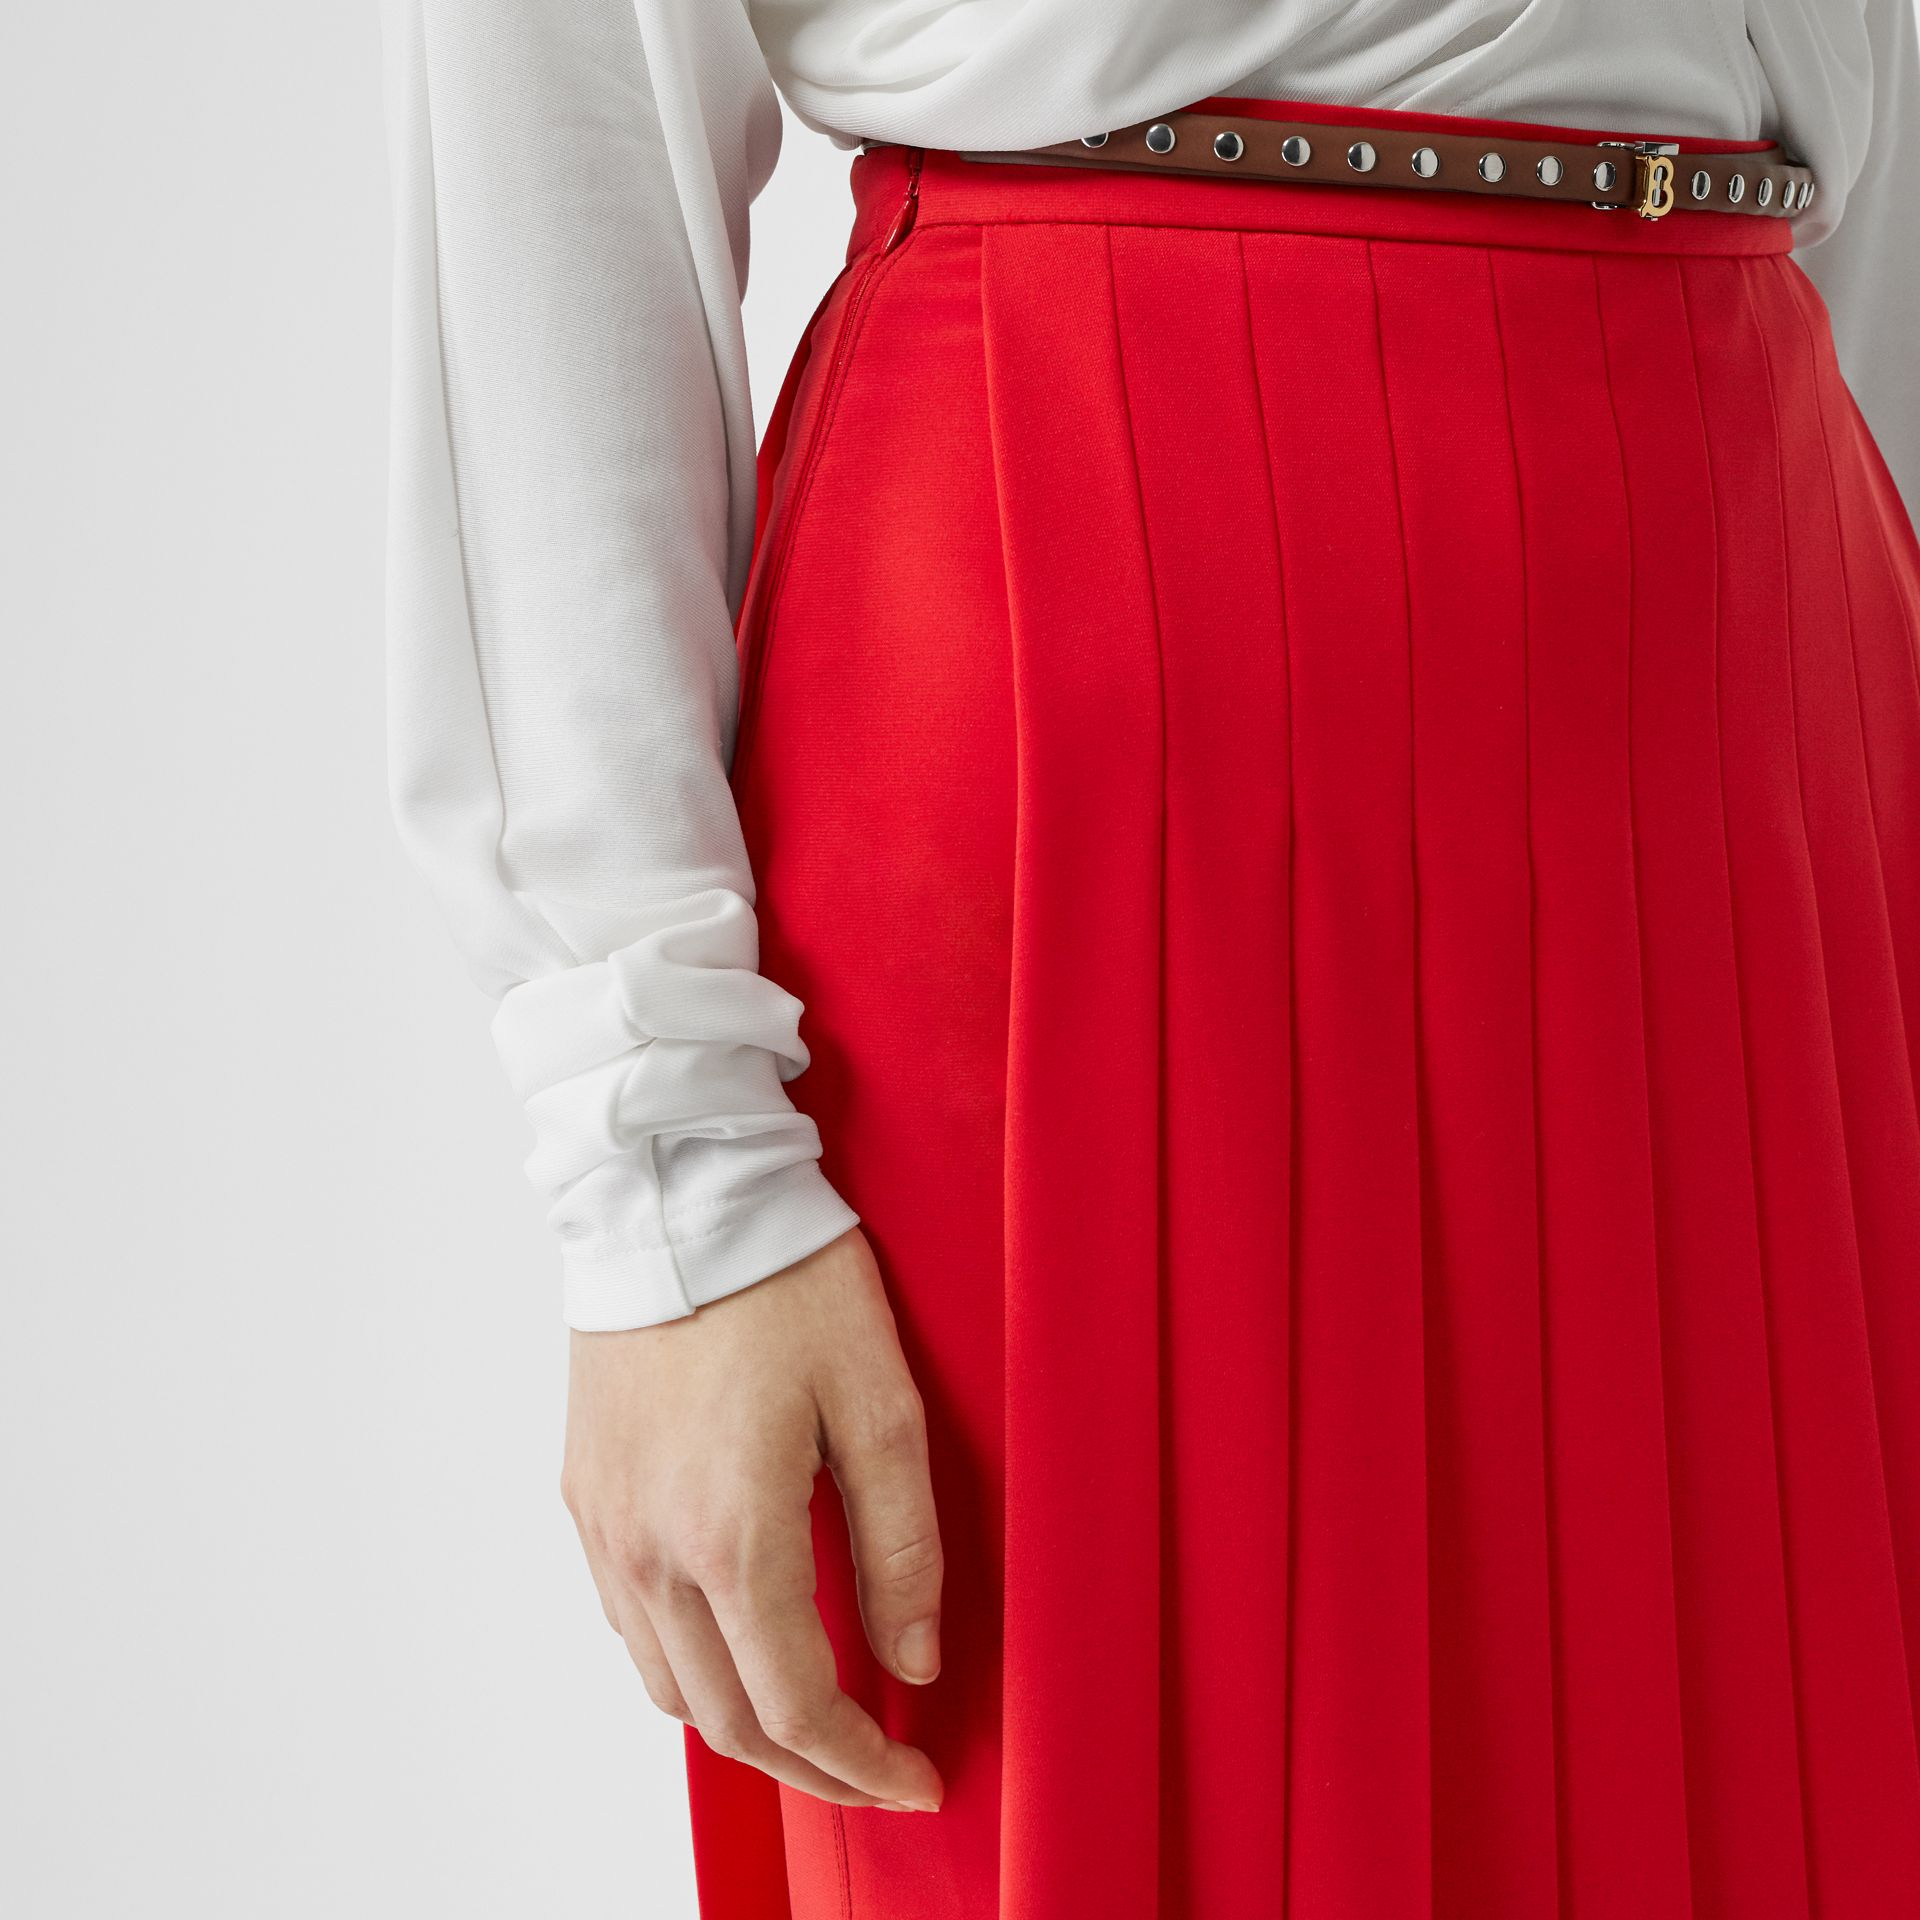 Stretch Cady Pleated Skirt in Bright Red - Women | Burberry Australia - gallery image 1